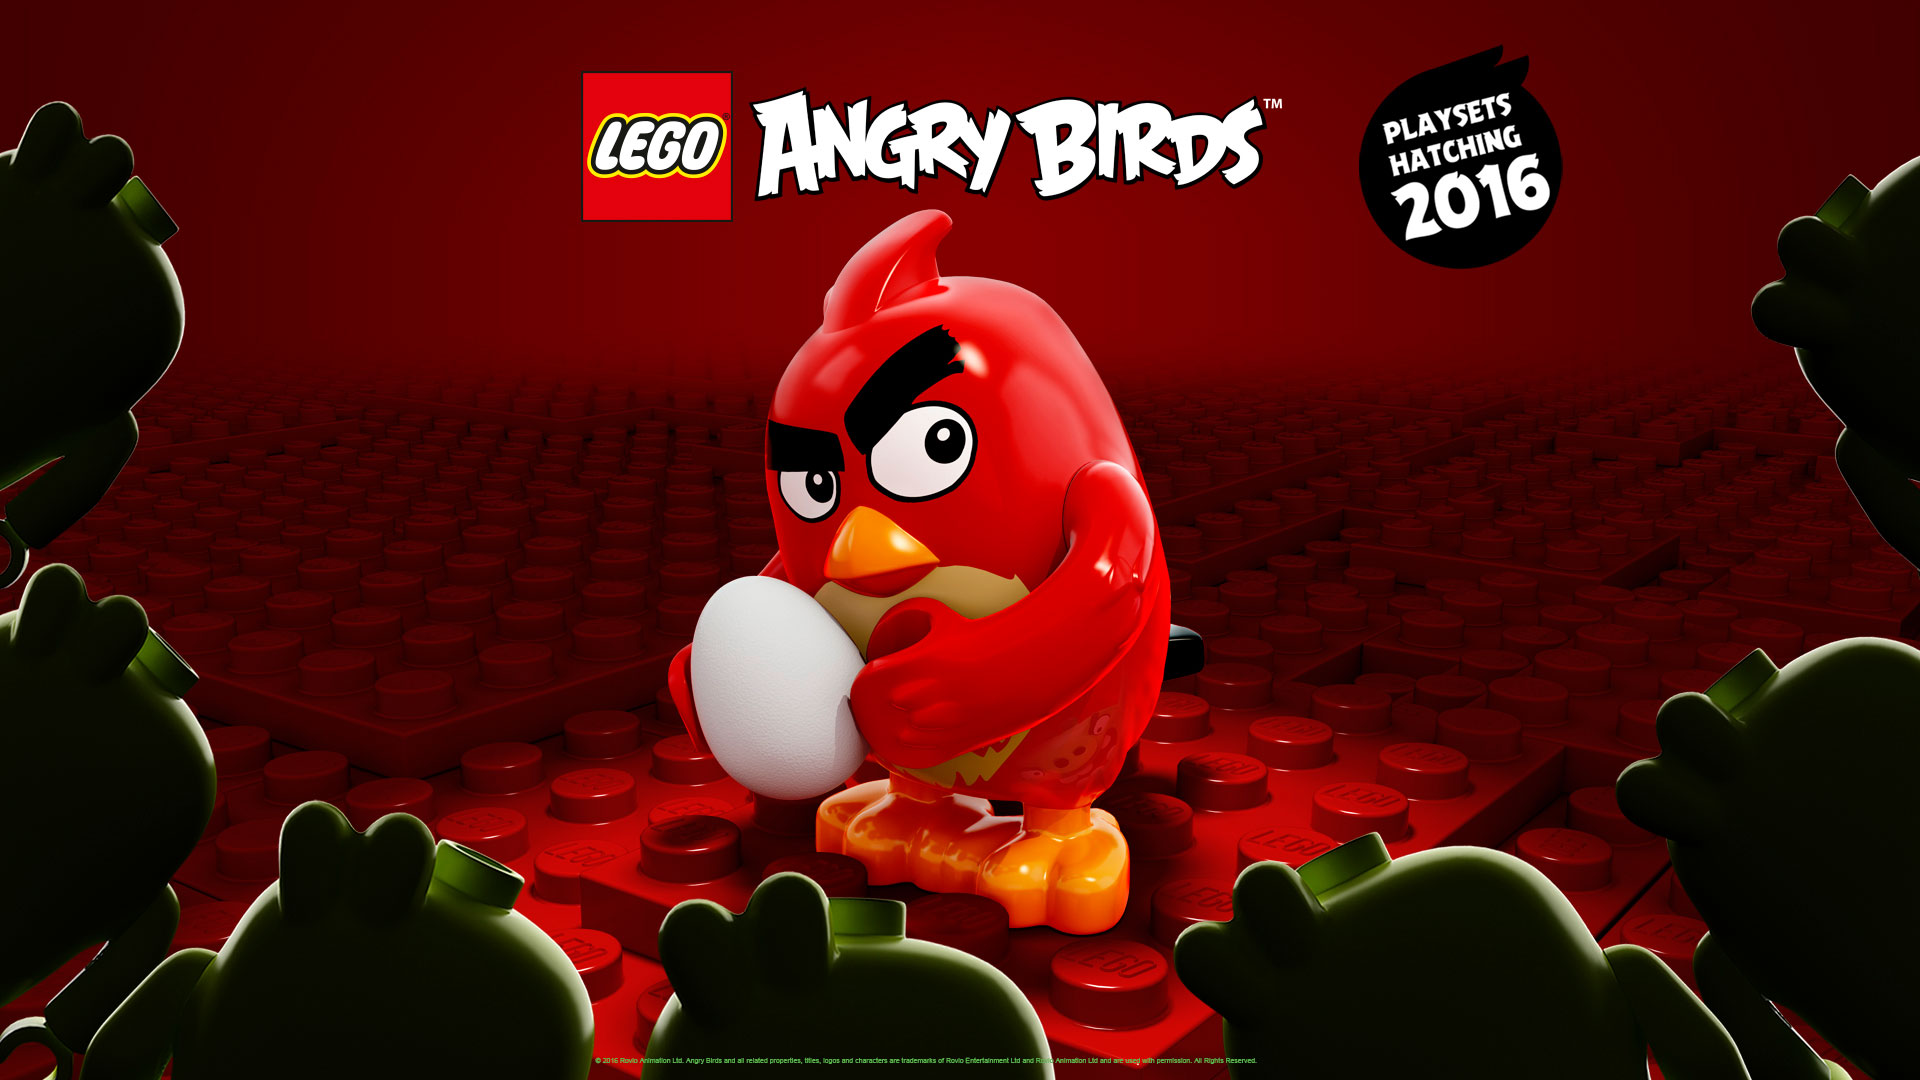 Lego Angry Birds Red Wallpaper